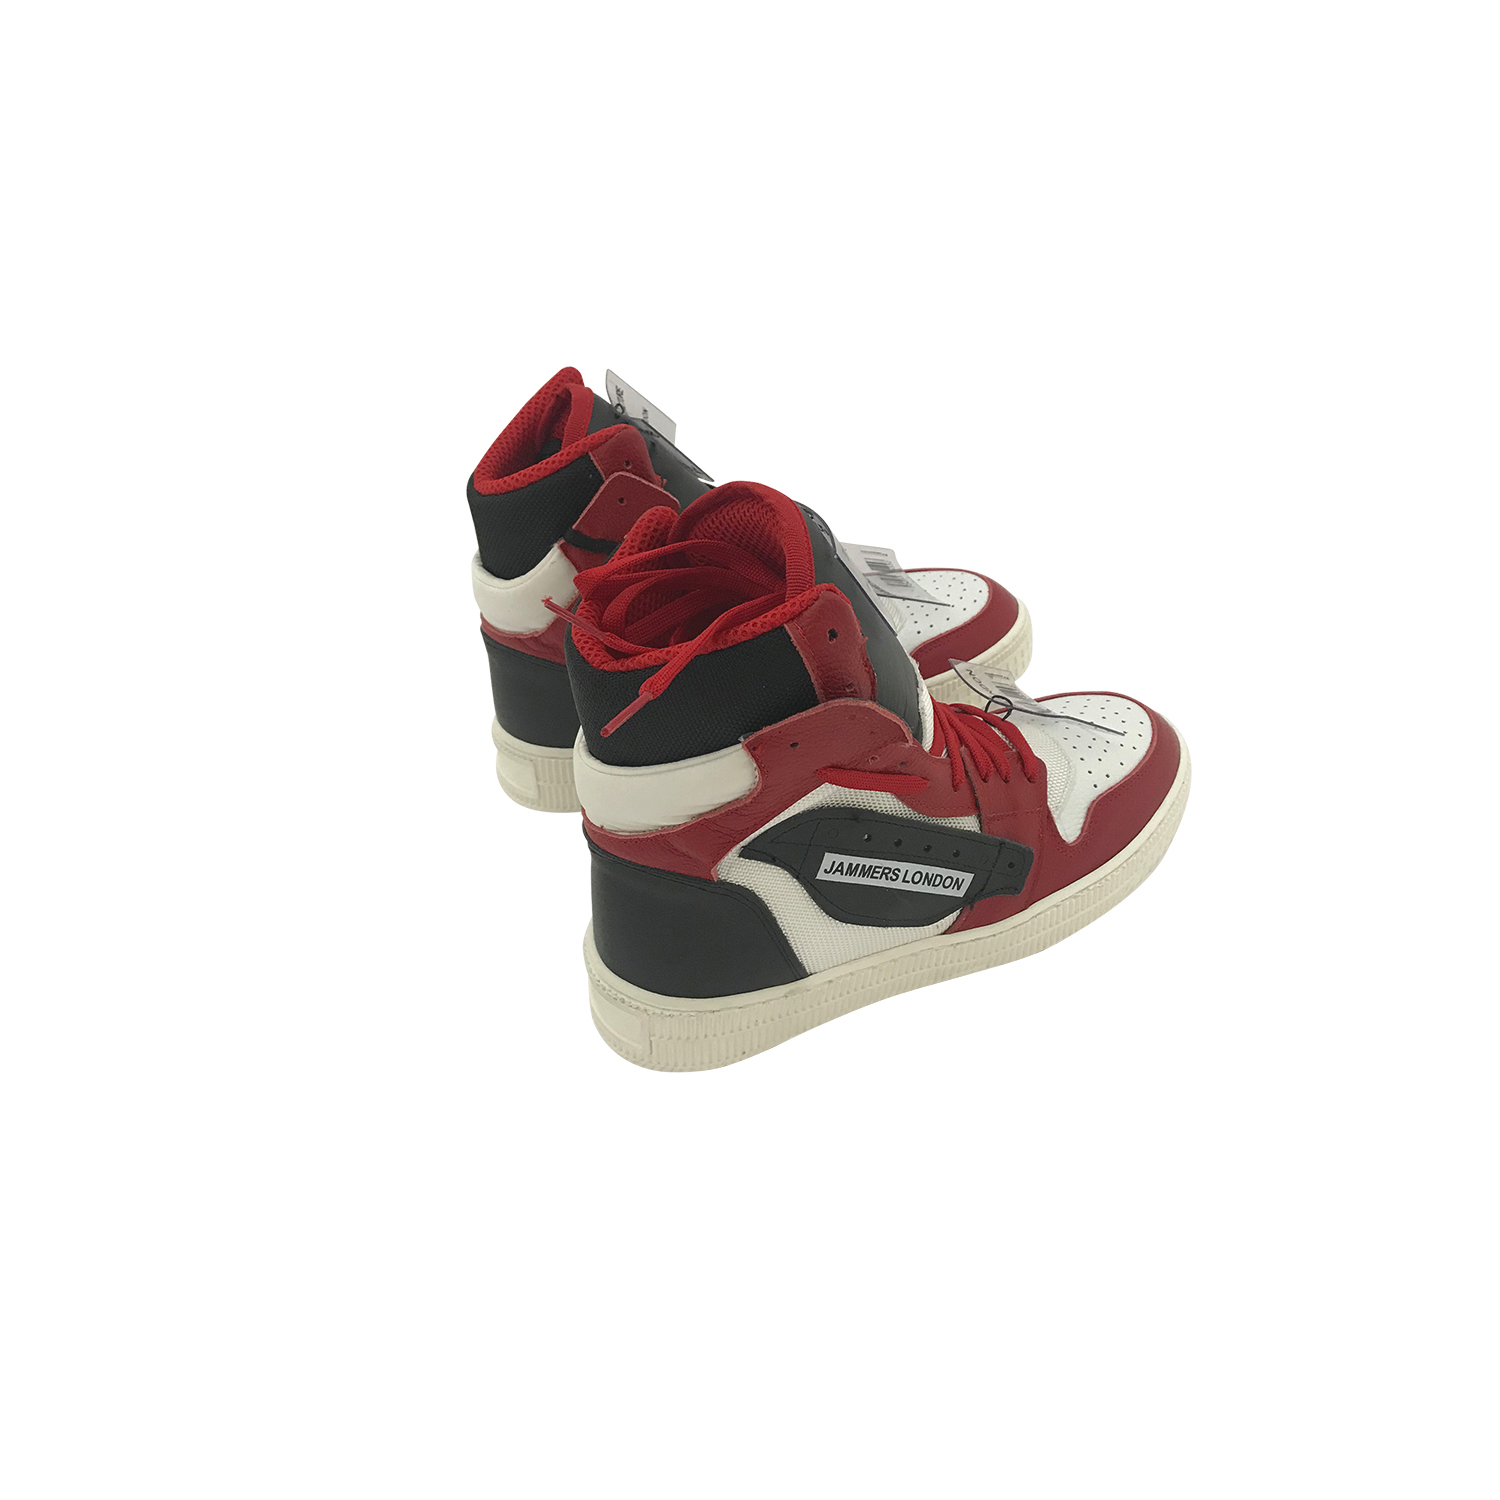 JAMMER LONDON OFF-CODE WHITE/RED/BLACK